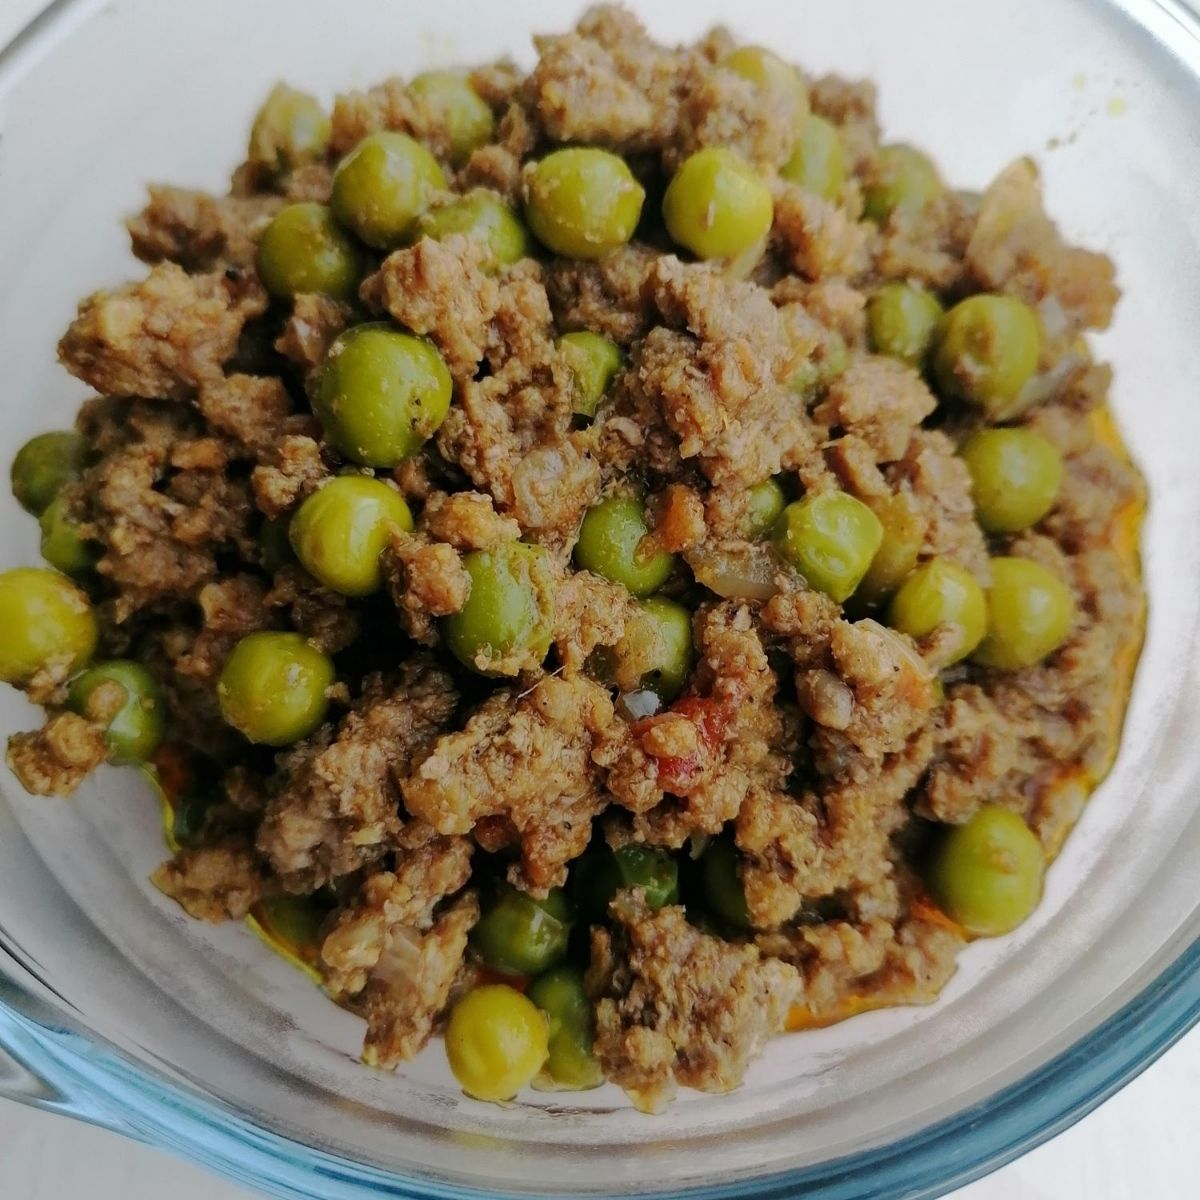 Keema matar - lamb minced meat with green peas